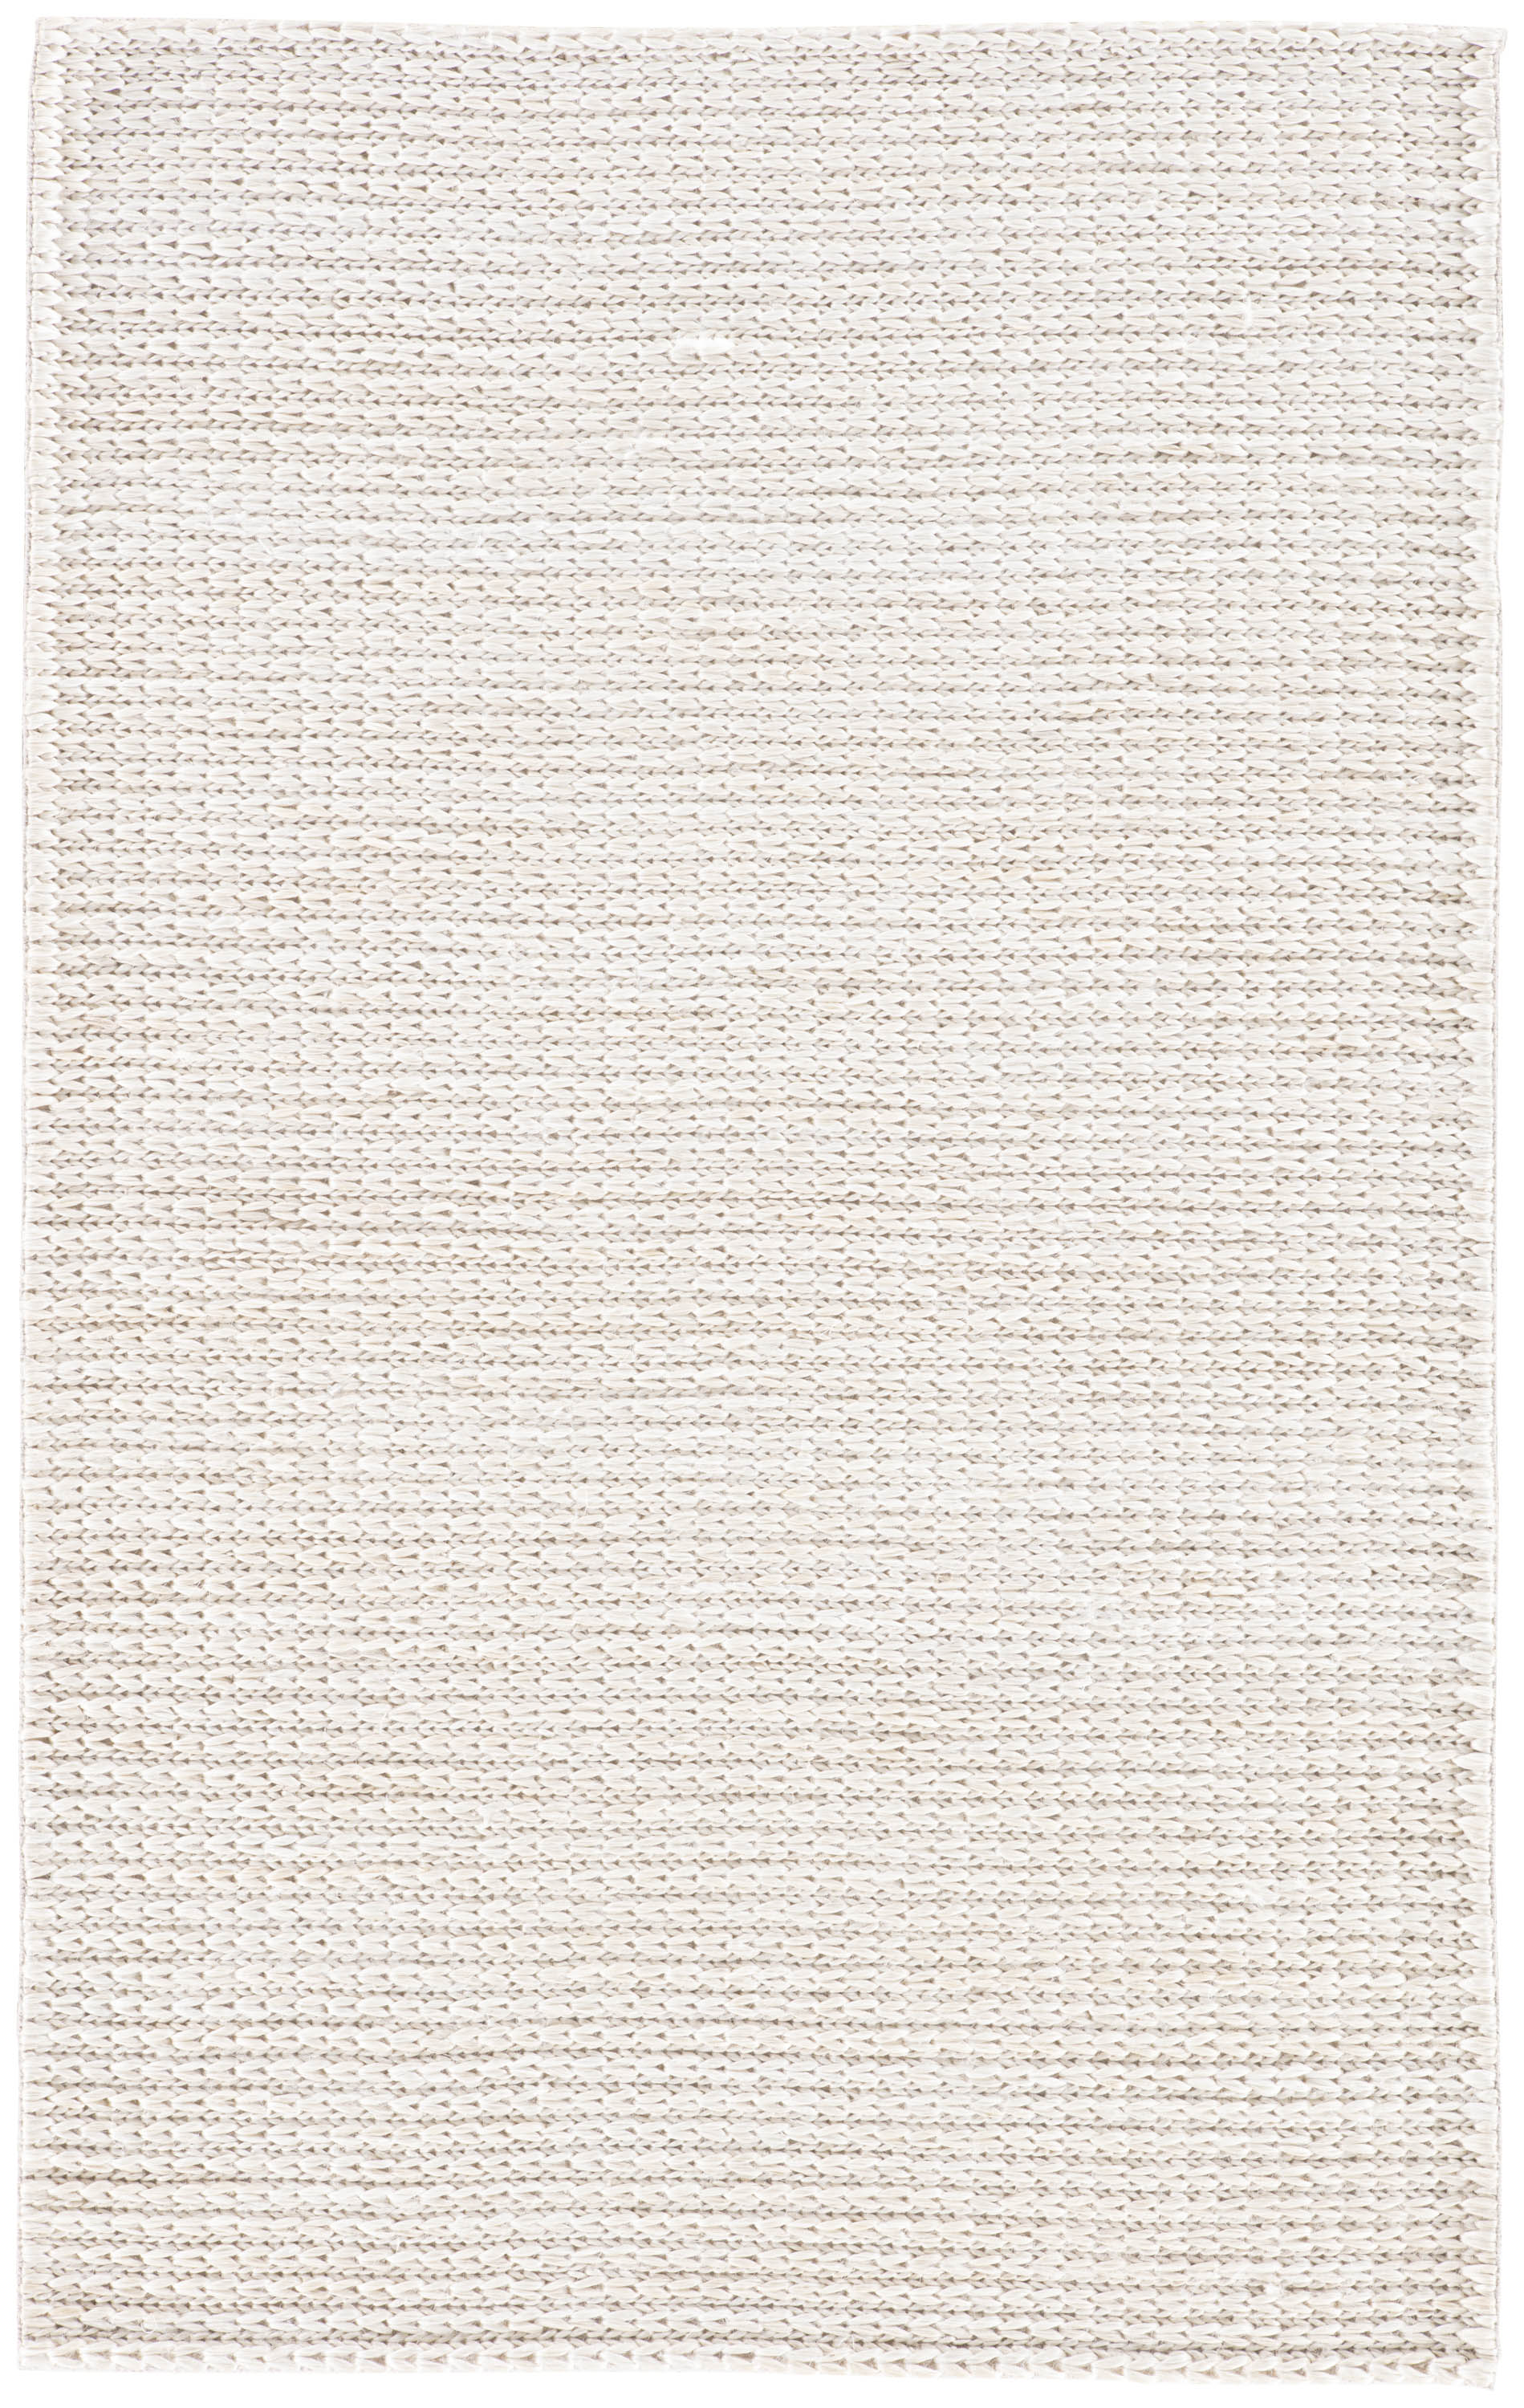 Rectangle White Solid Hand Woven Jute & Natural Fibers Casual recommended for Bedroom, Bathroom, Dining Room, Office, Hallway, Living Room